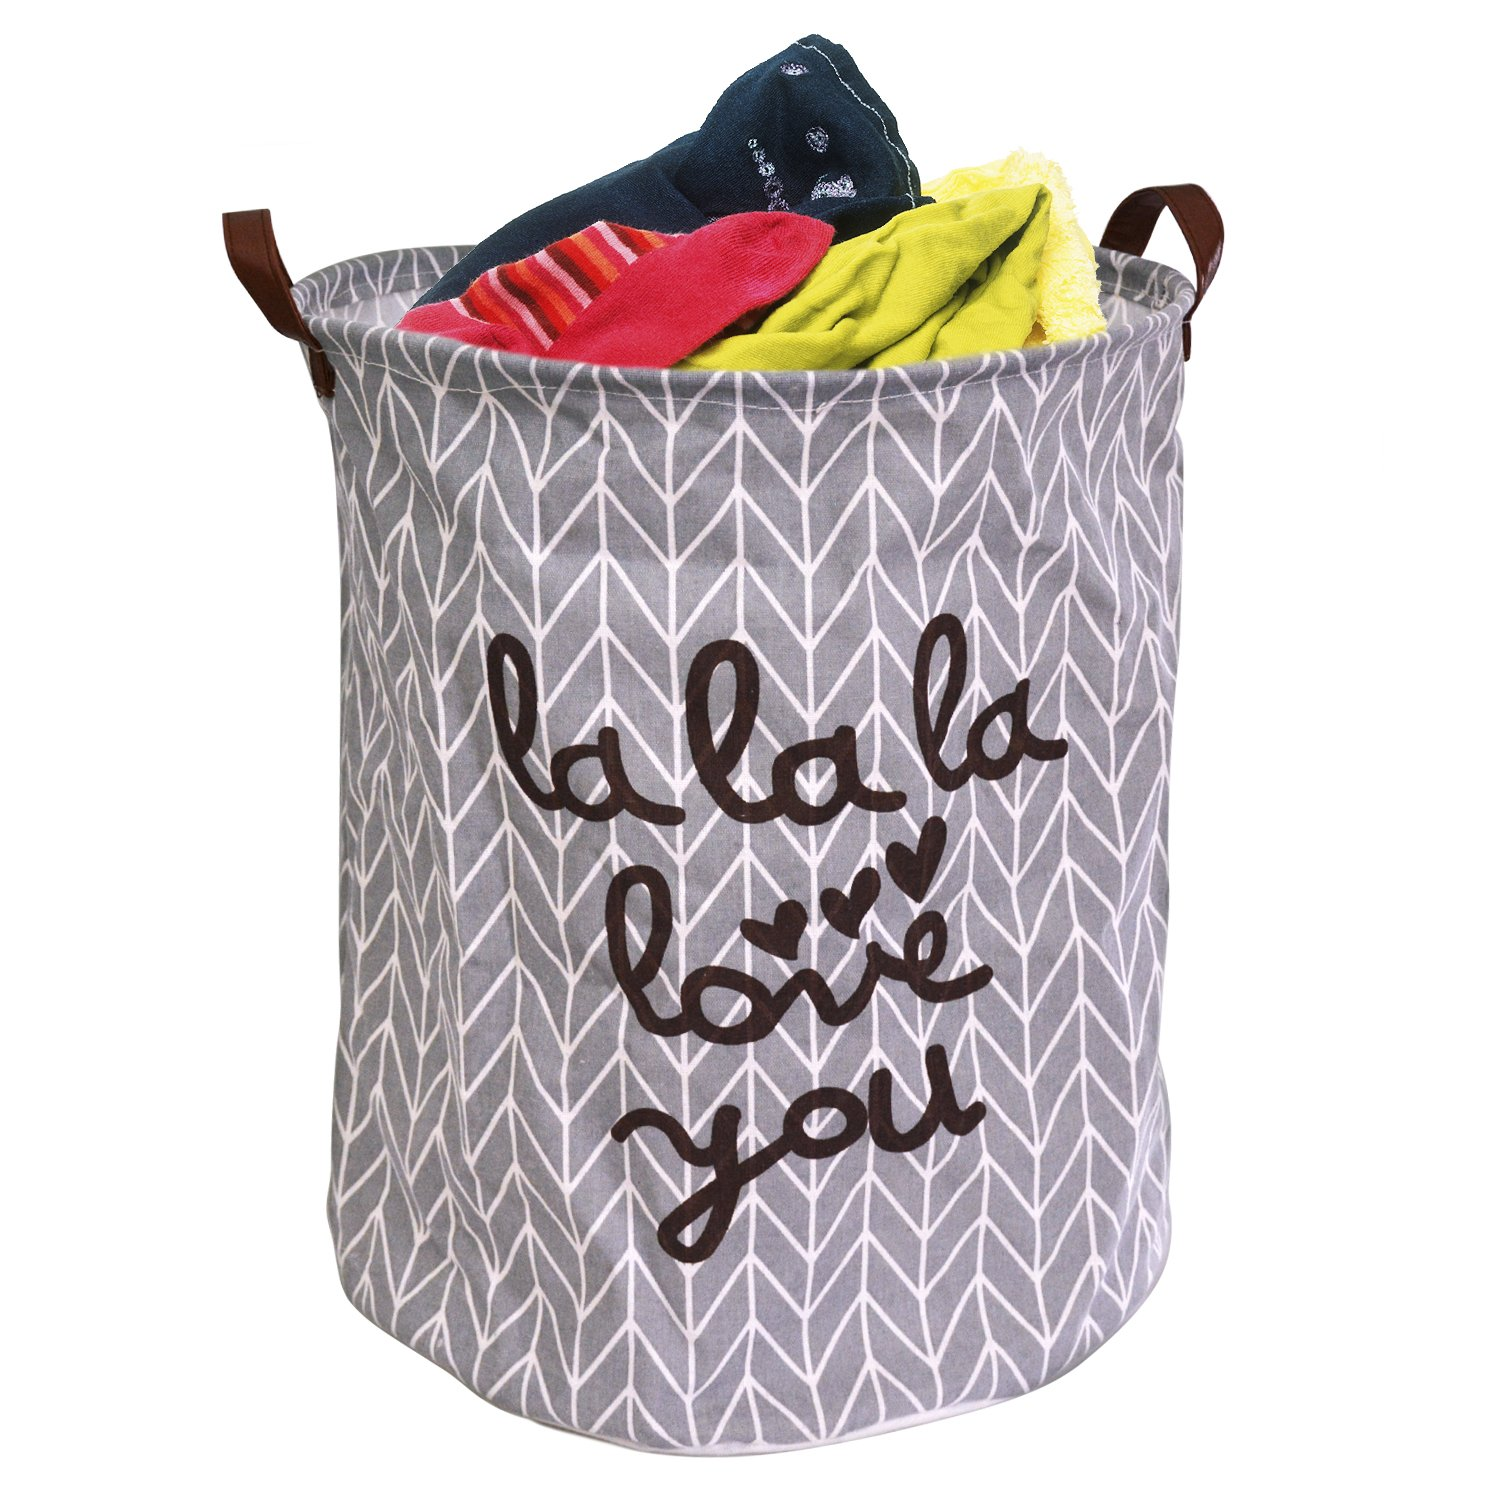 Easy-Tang Large Laundry Hamper Bucket Waterproof Coating Storage Bin Collapsible Washing Basket Home Nursery Toy Organizer (Grey LaLaLa Love You)